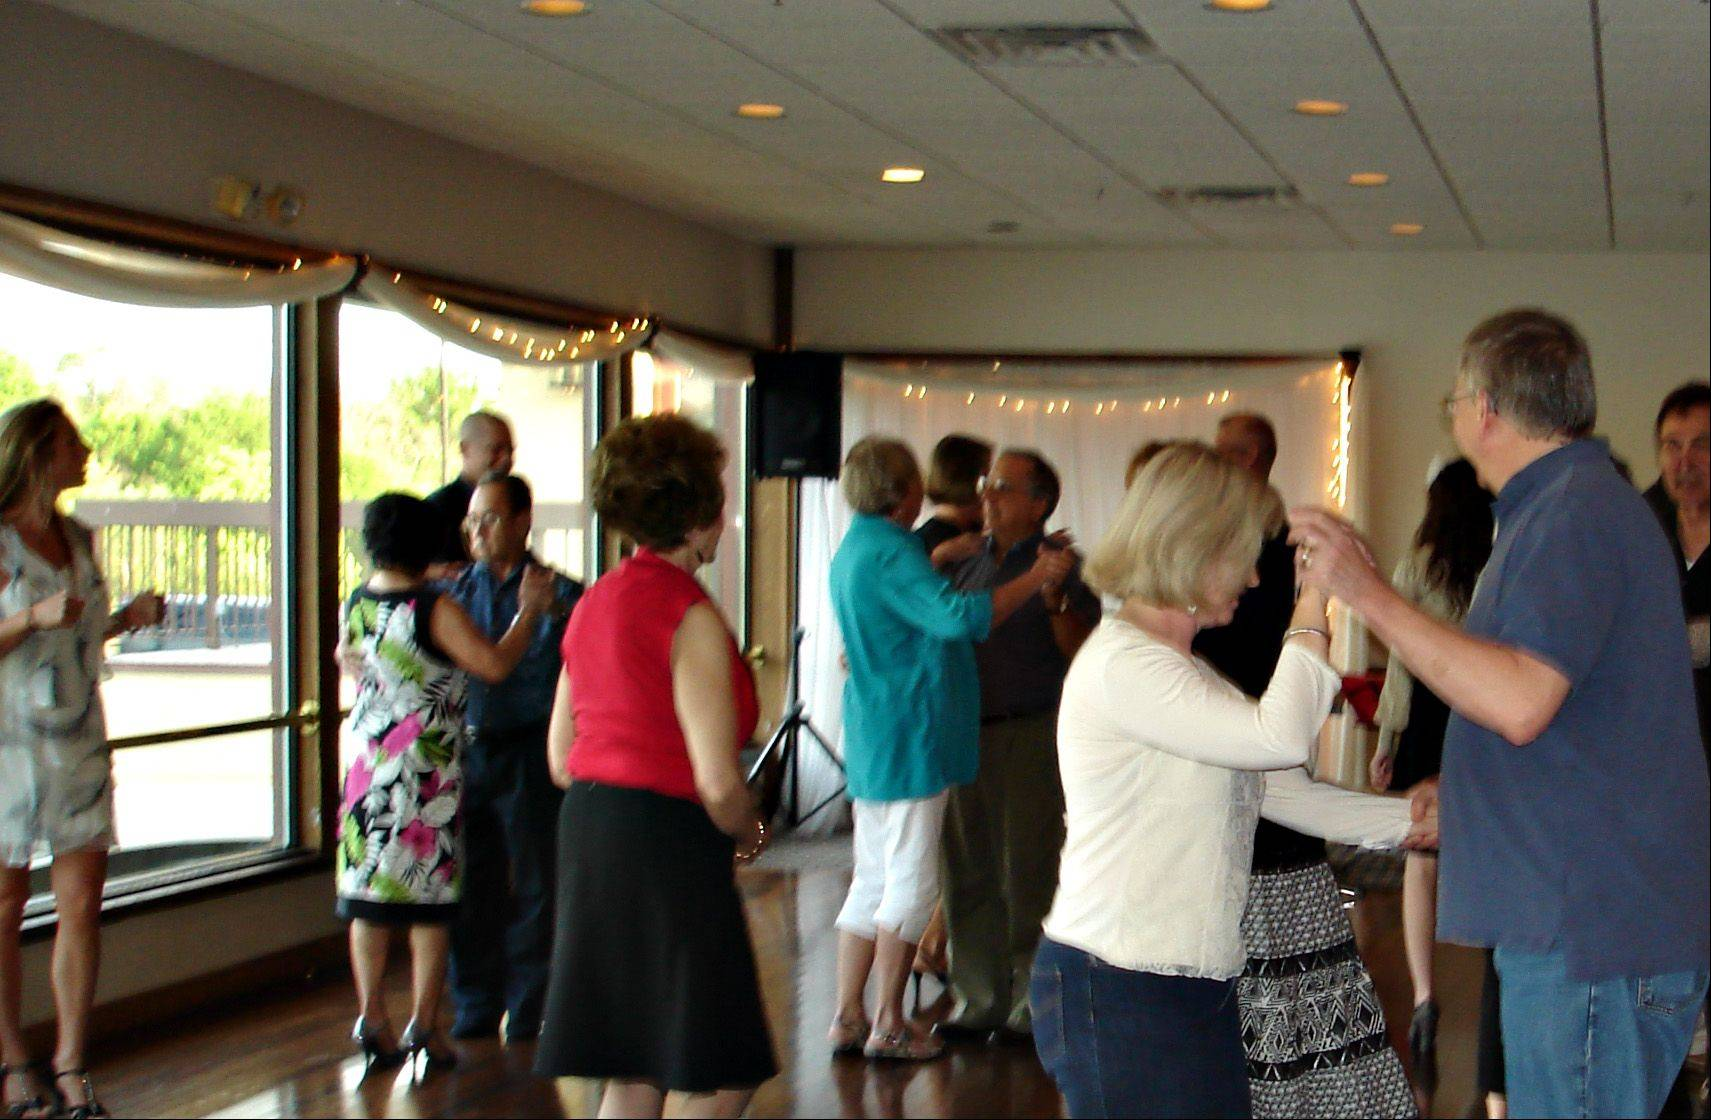 The Geneva Dance Club at Riverside Receptions lets people work on their dancing skills.